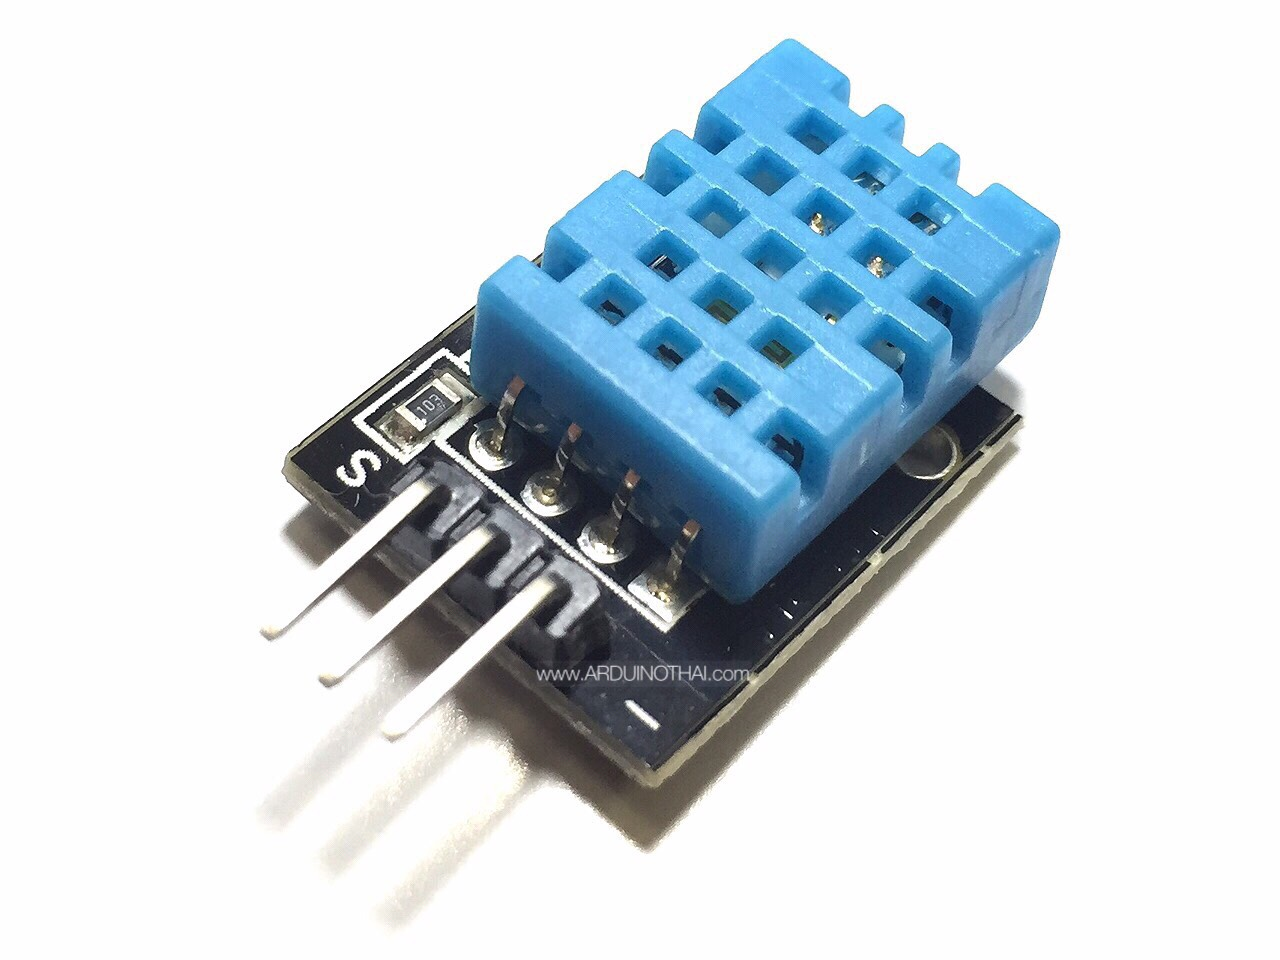 DHT11 Digital Temperature and Humidity Sensor Module (Set 2)